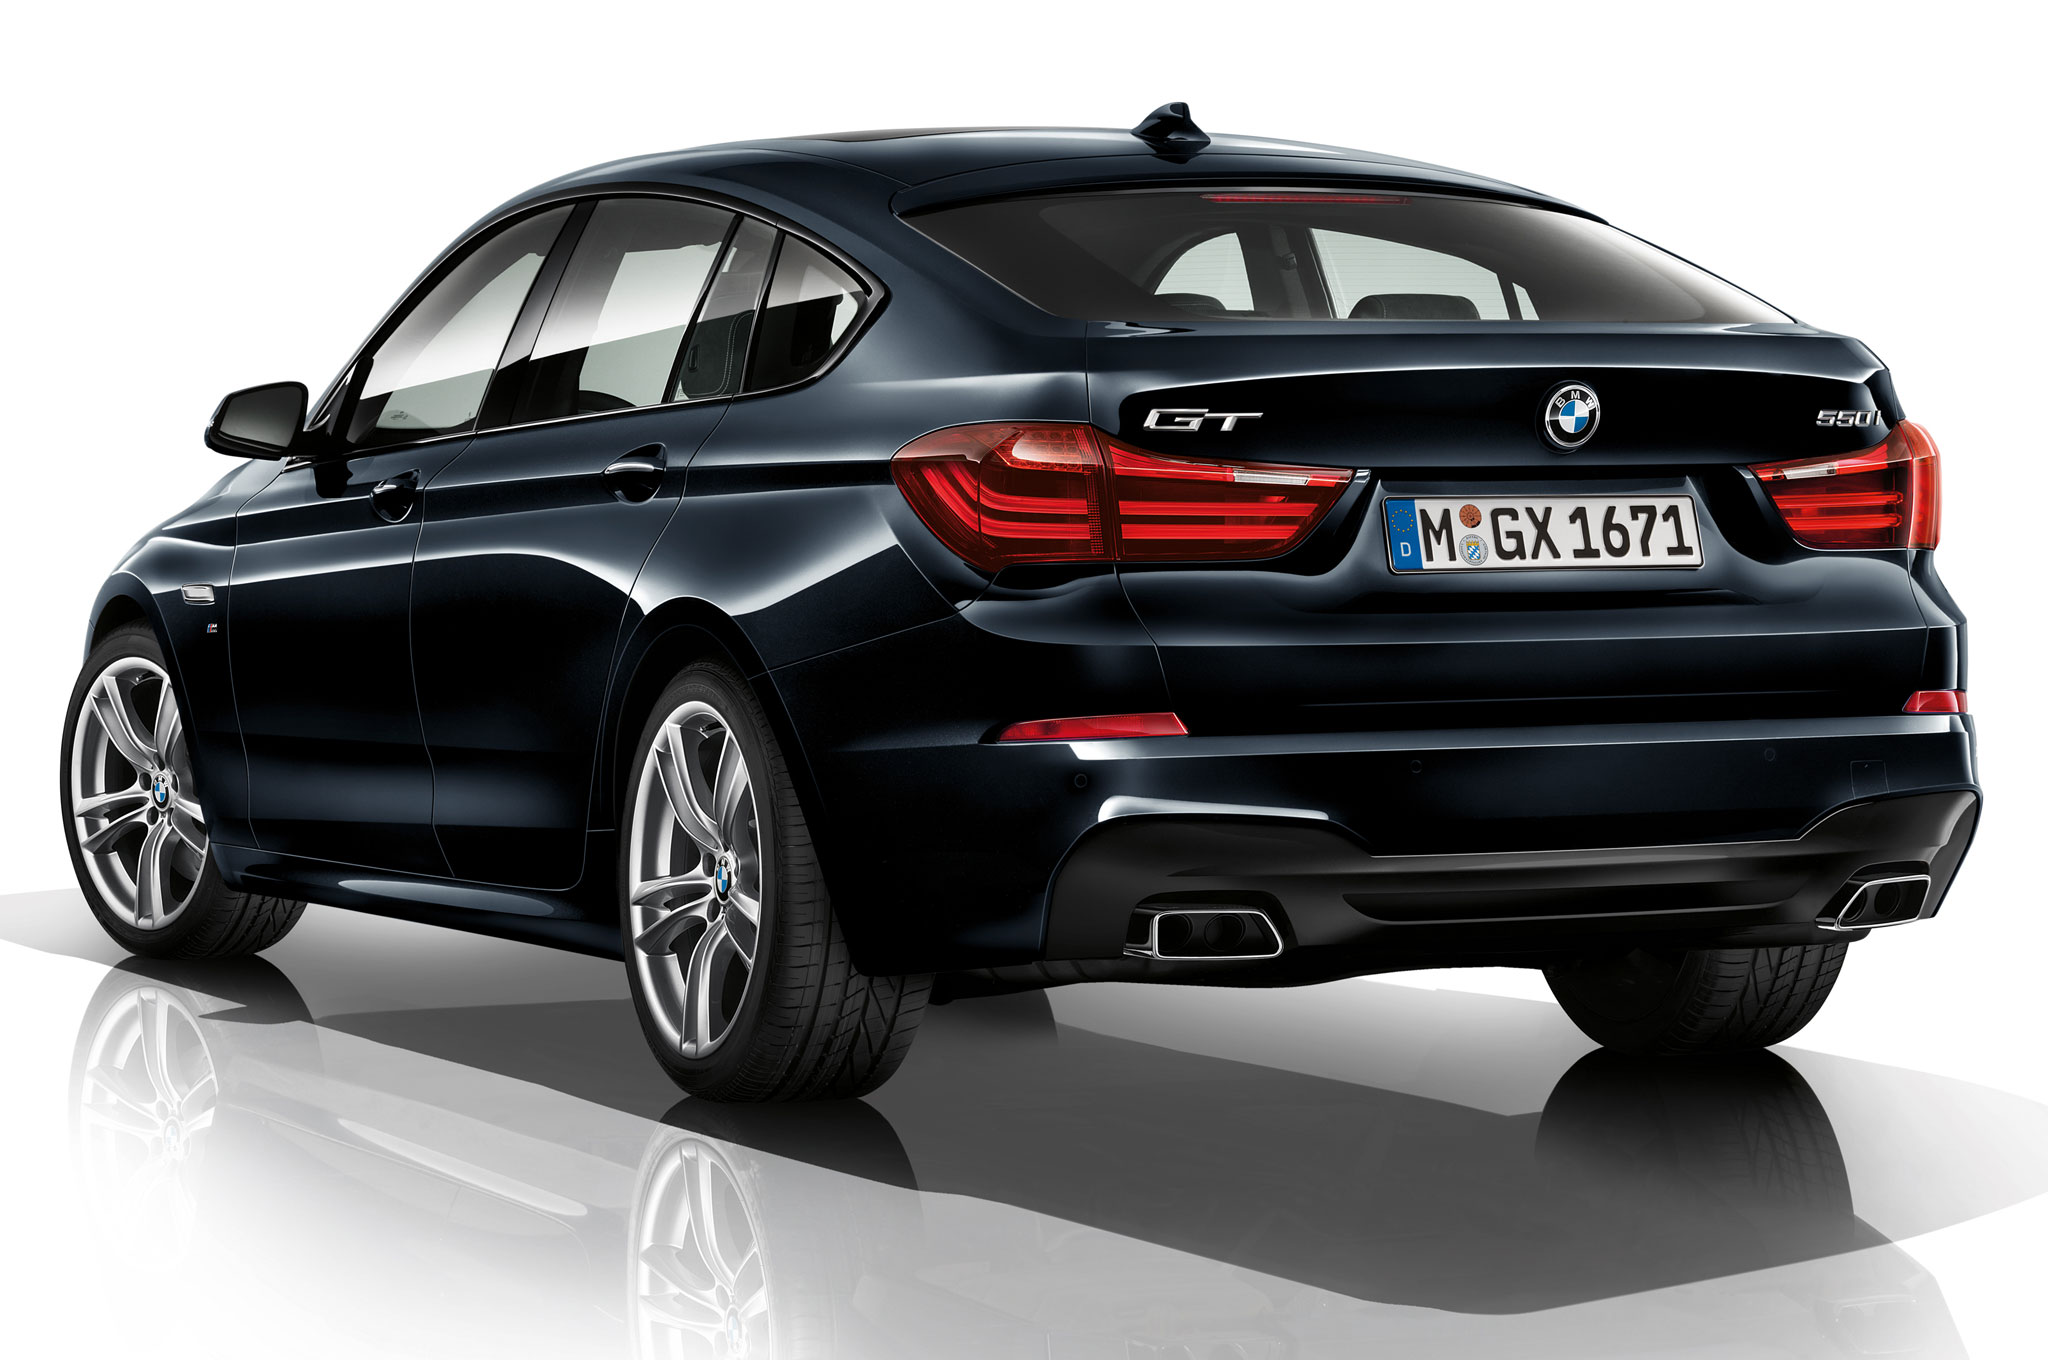 2016 bmw 5 series gran turismo photos informations articles. Black Bedroom Furniture Sets. Home Design Ideas